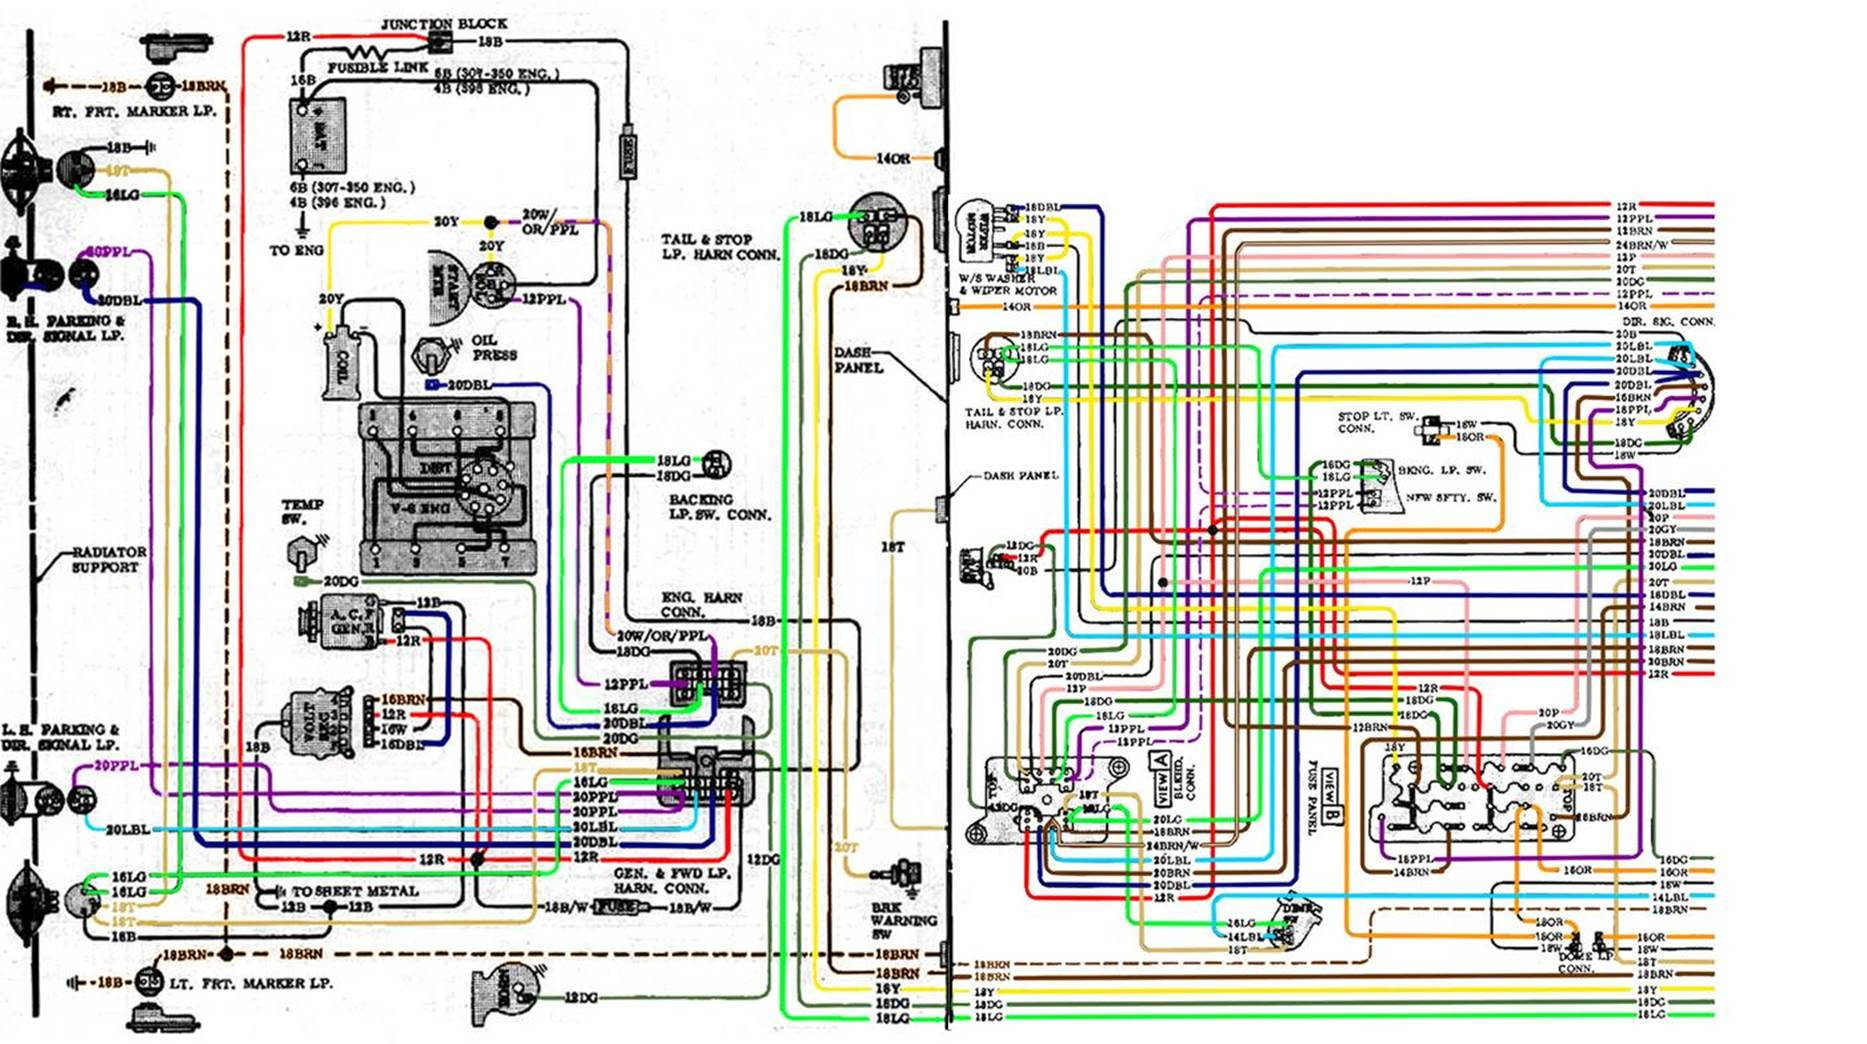 72 Blazer Wiring Diagram Opinions About Ke70 Alternator 67 Chevy Rh Outintheshop Com 1972 C10